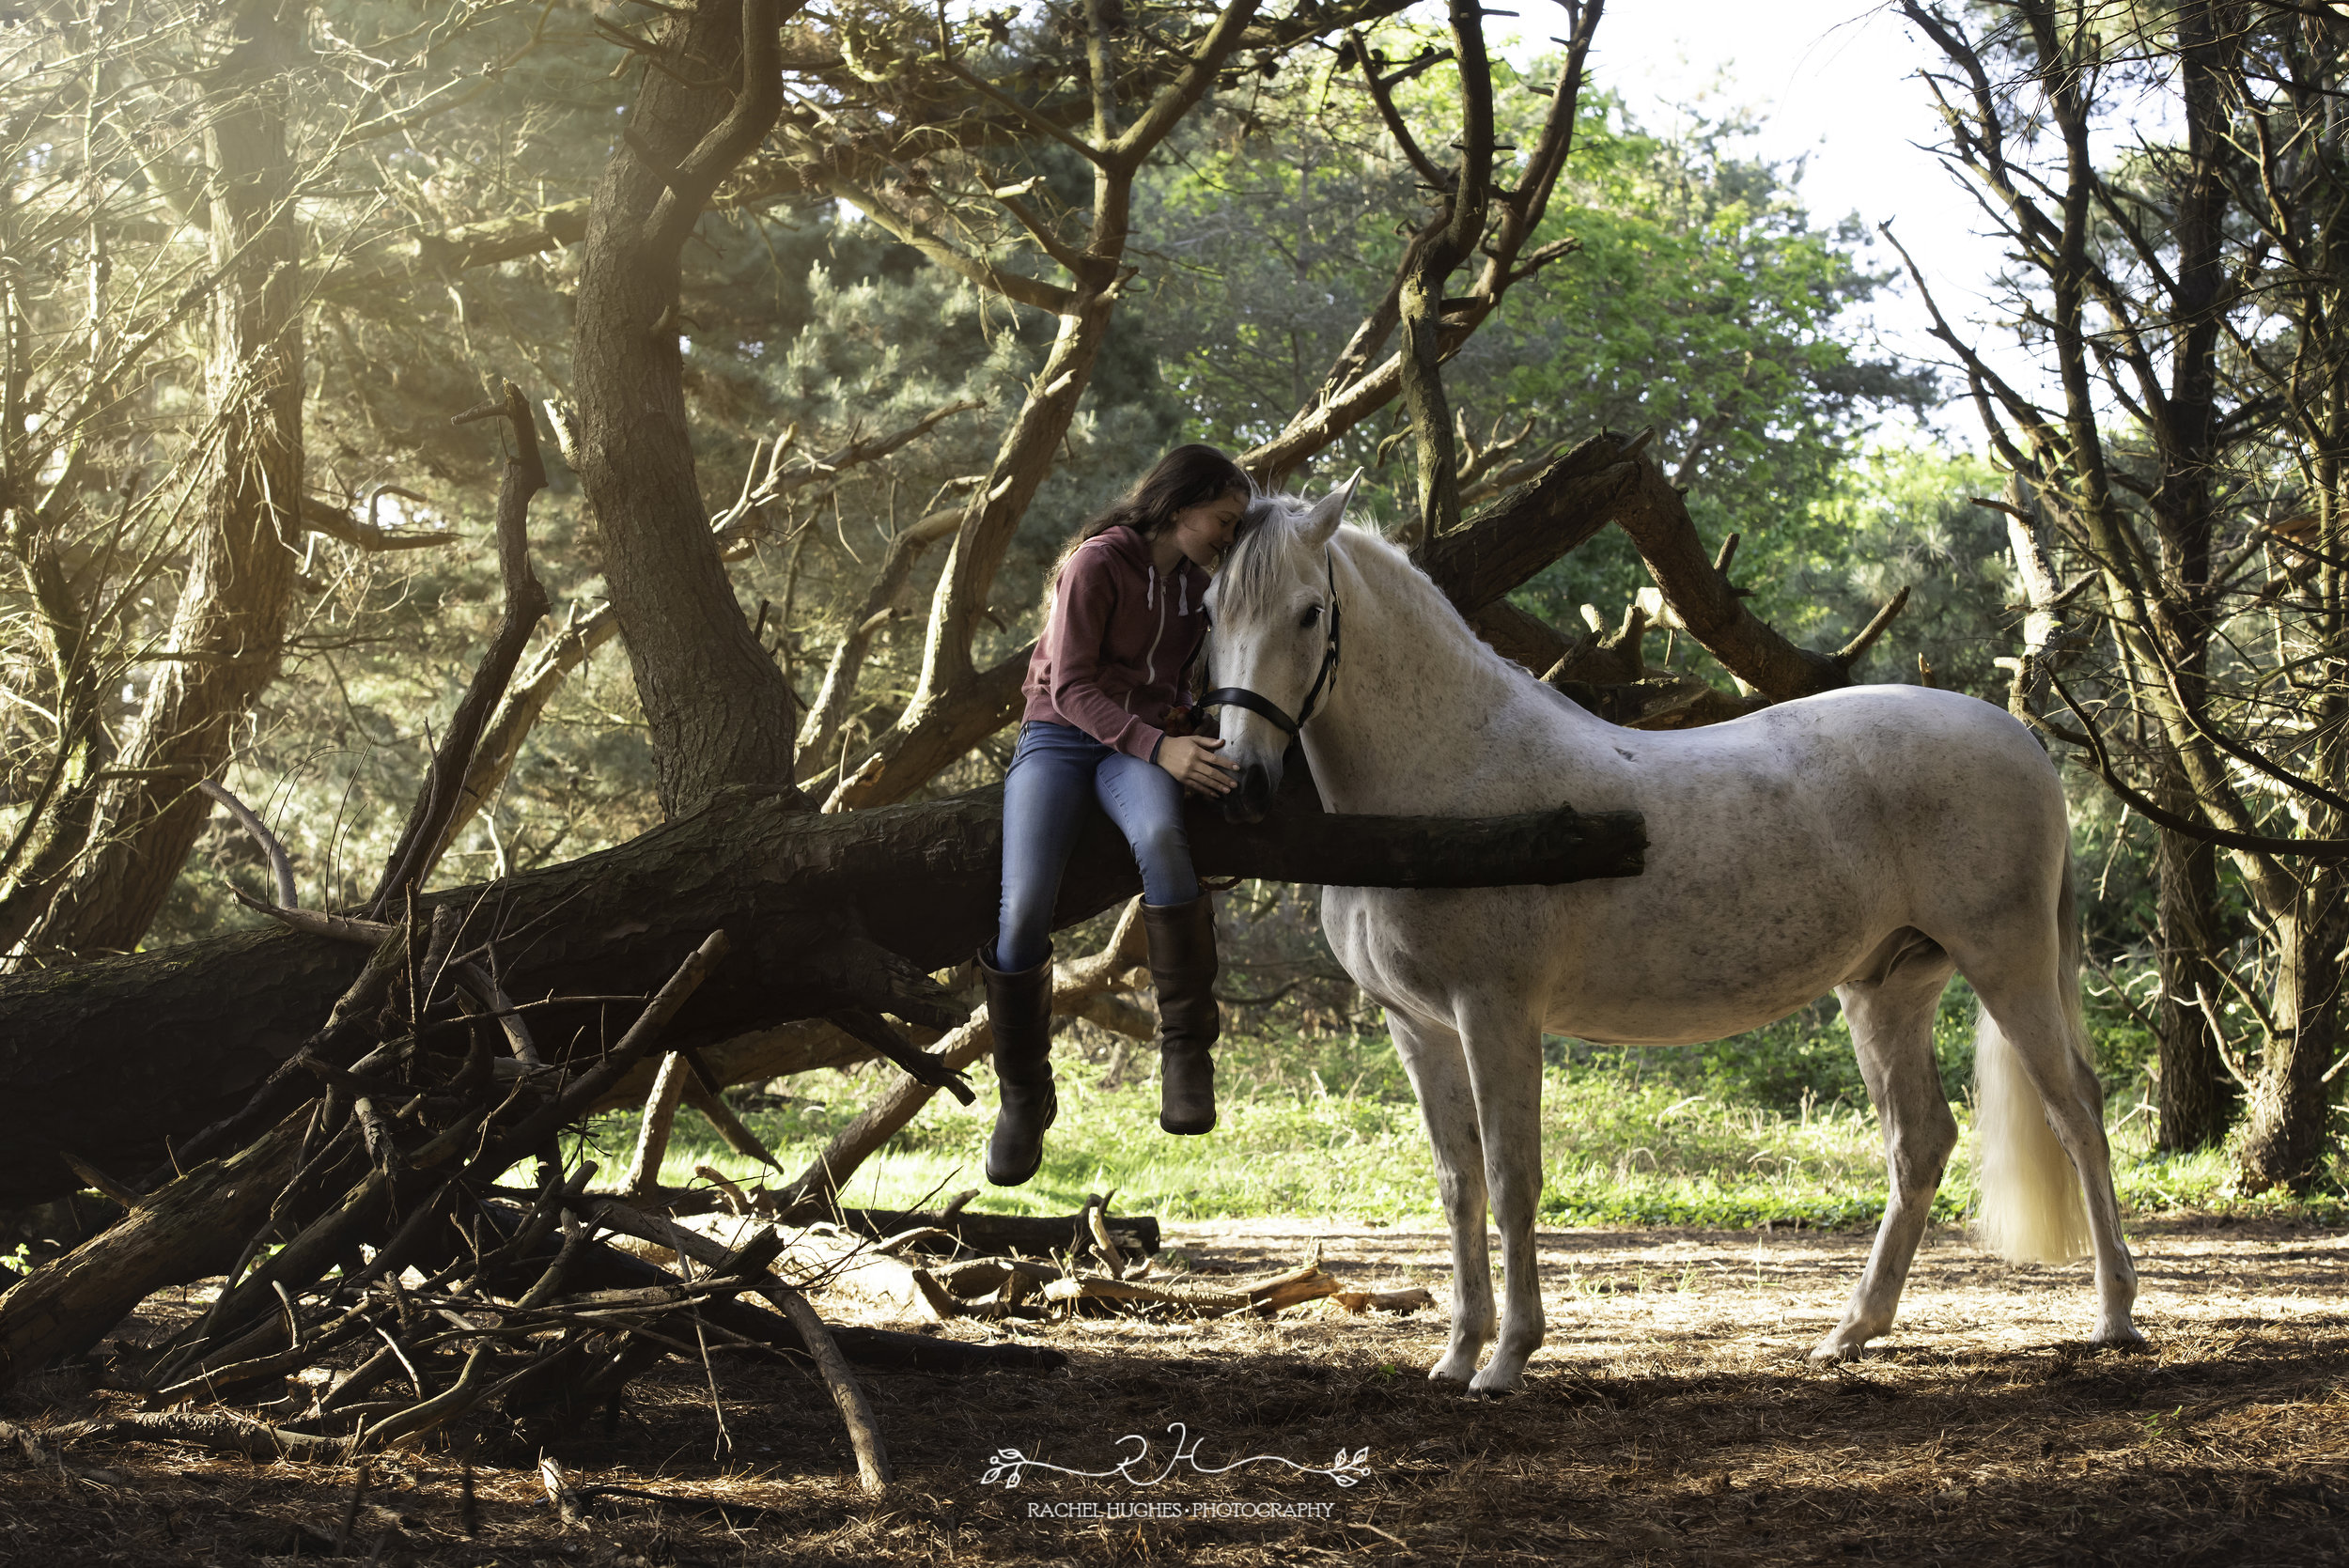 Jersey photographer - rescue horse and girl in forest